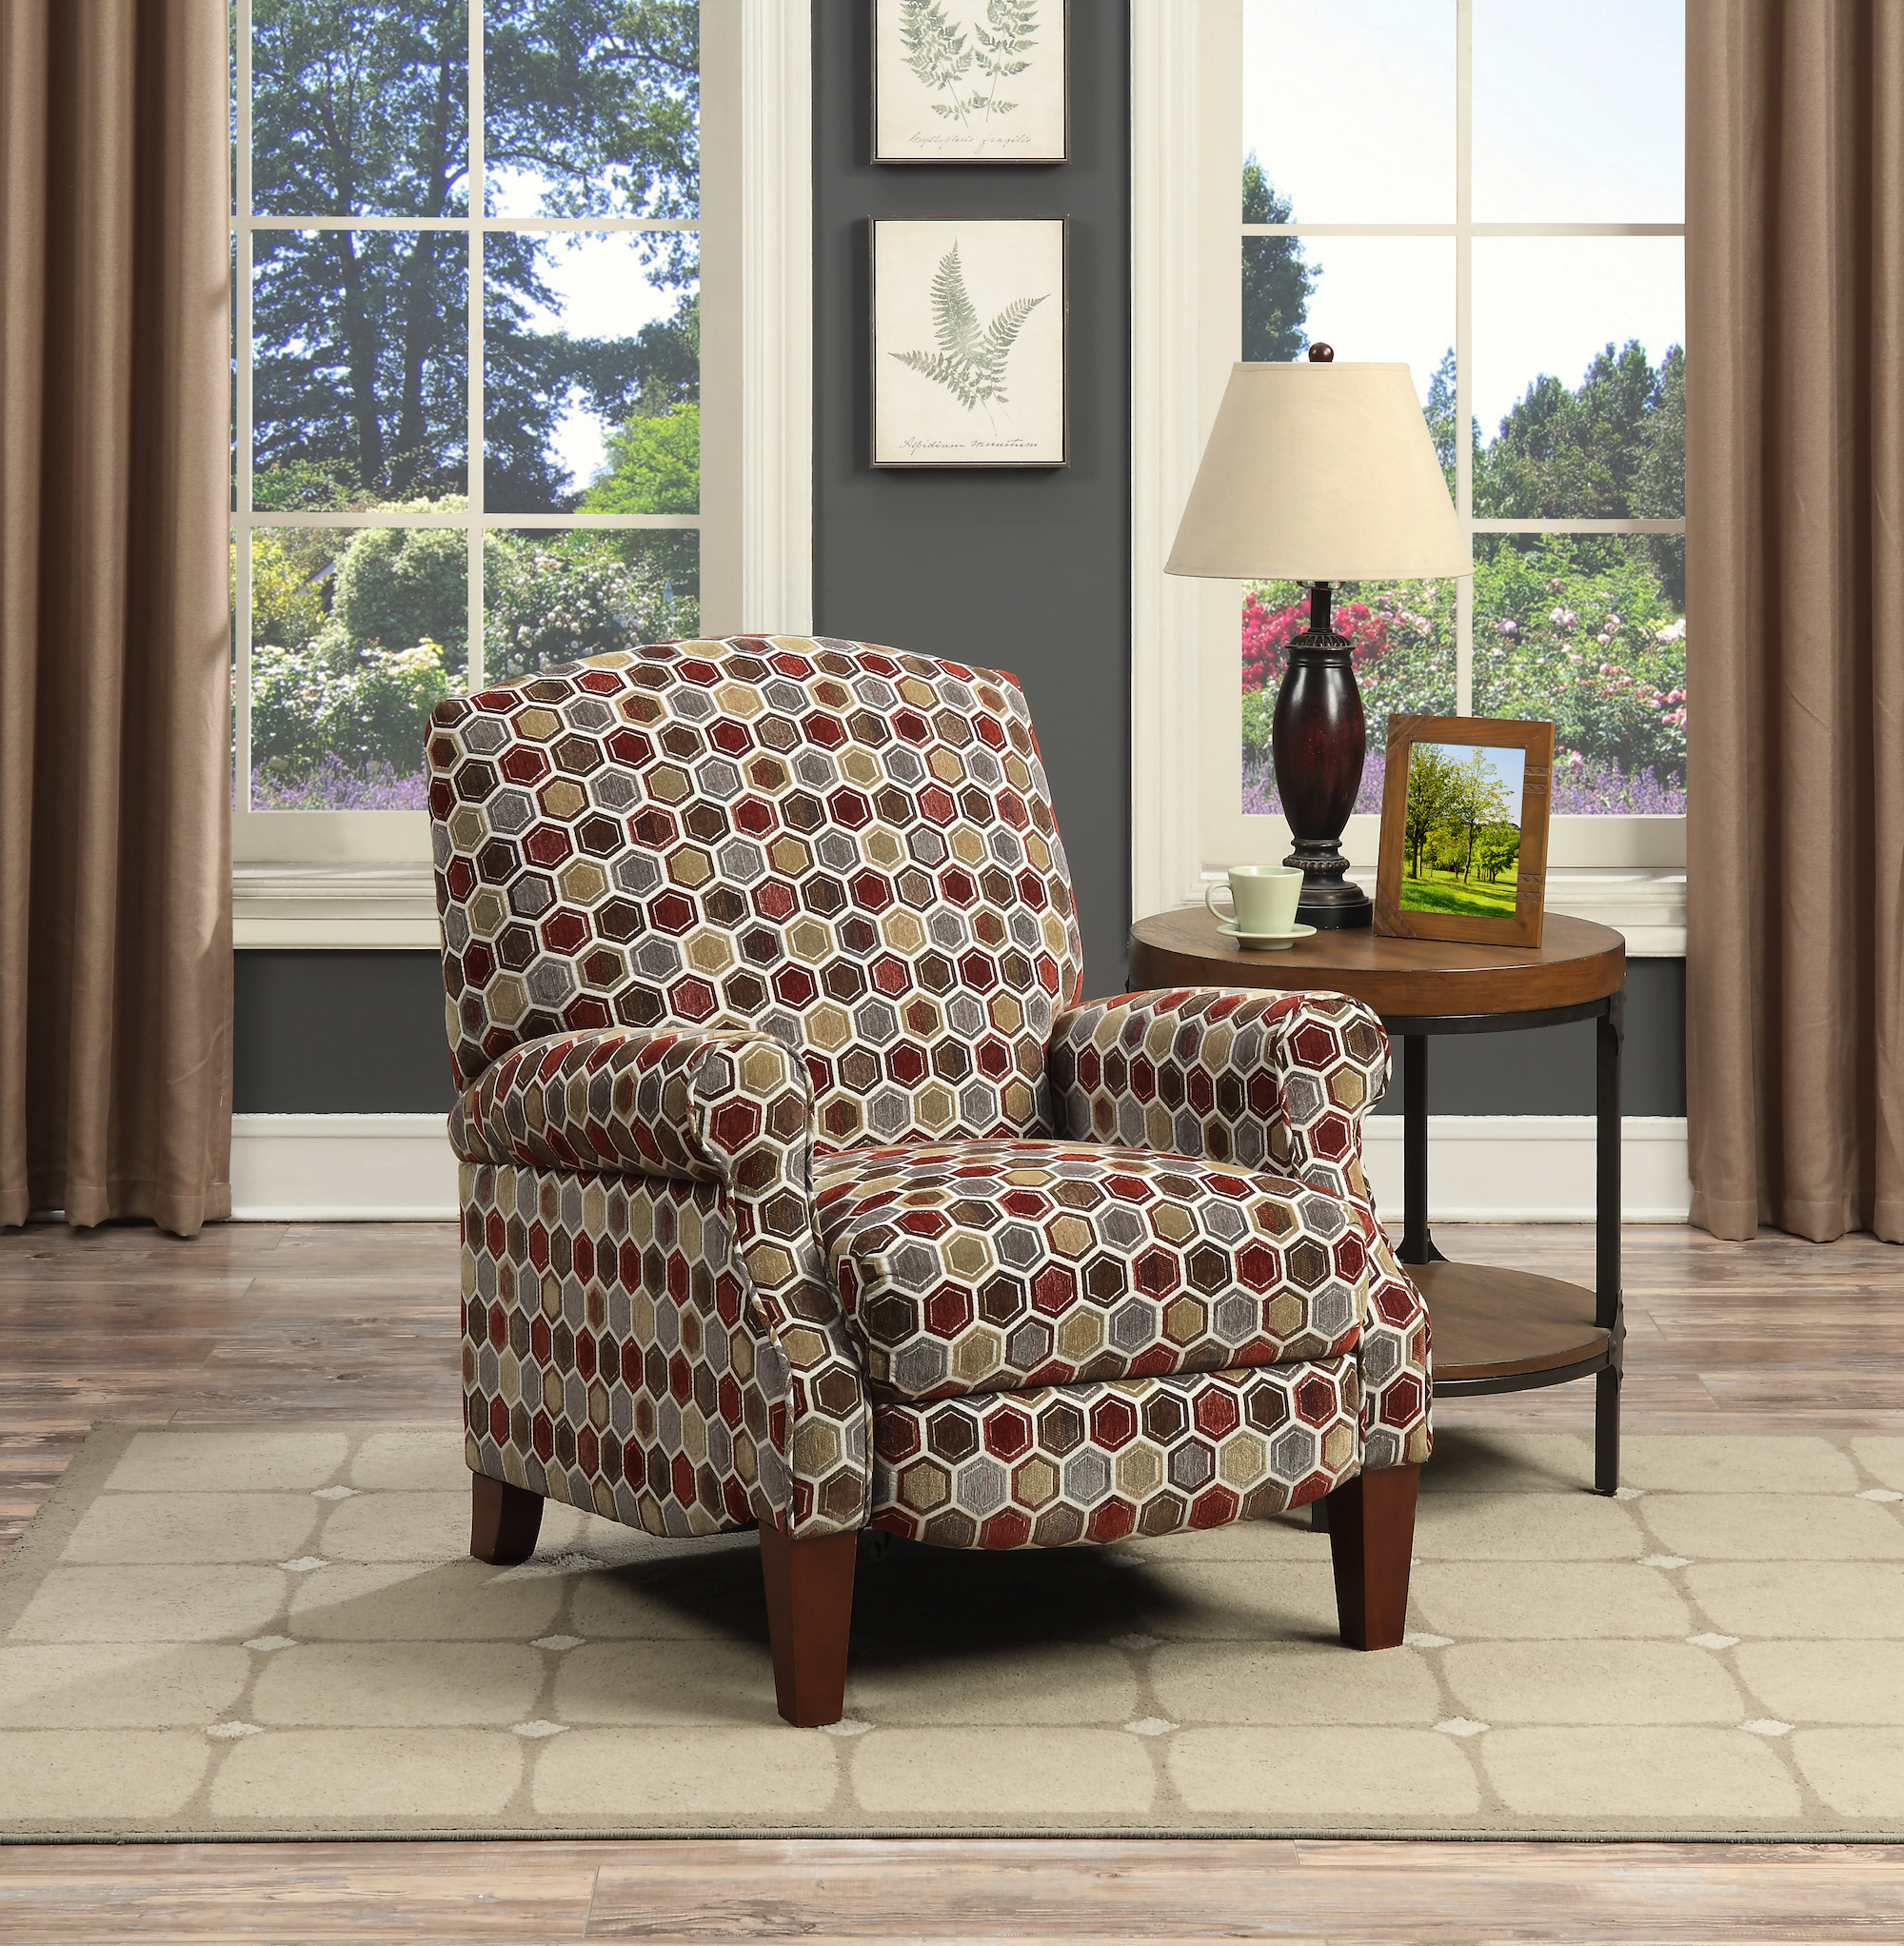 2000895 Brooke Fabric Push Back Recliner - Closed Low Res